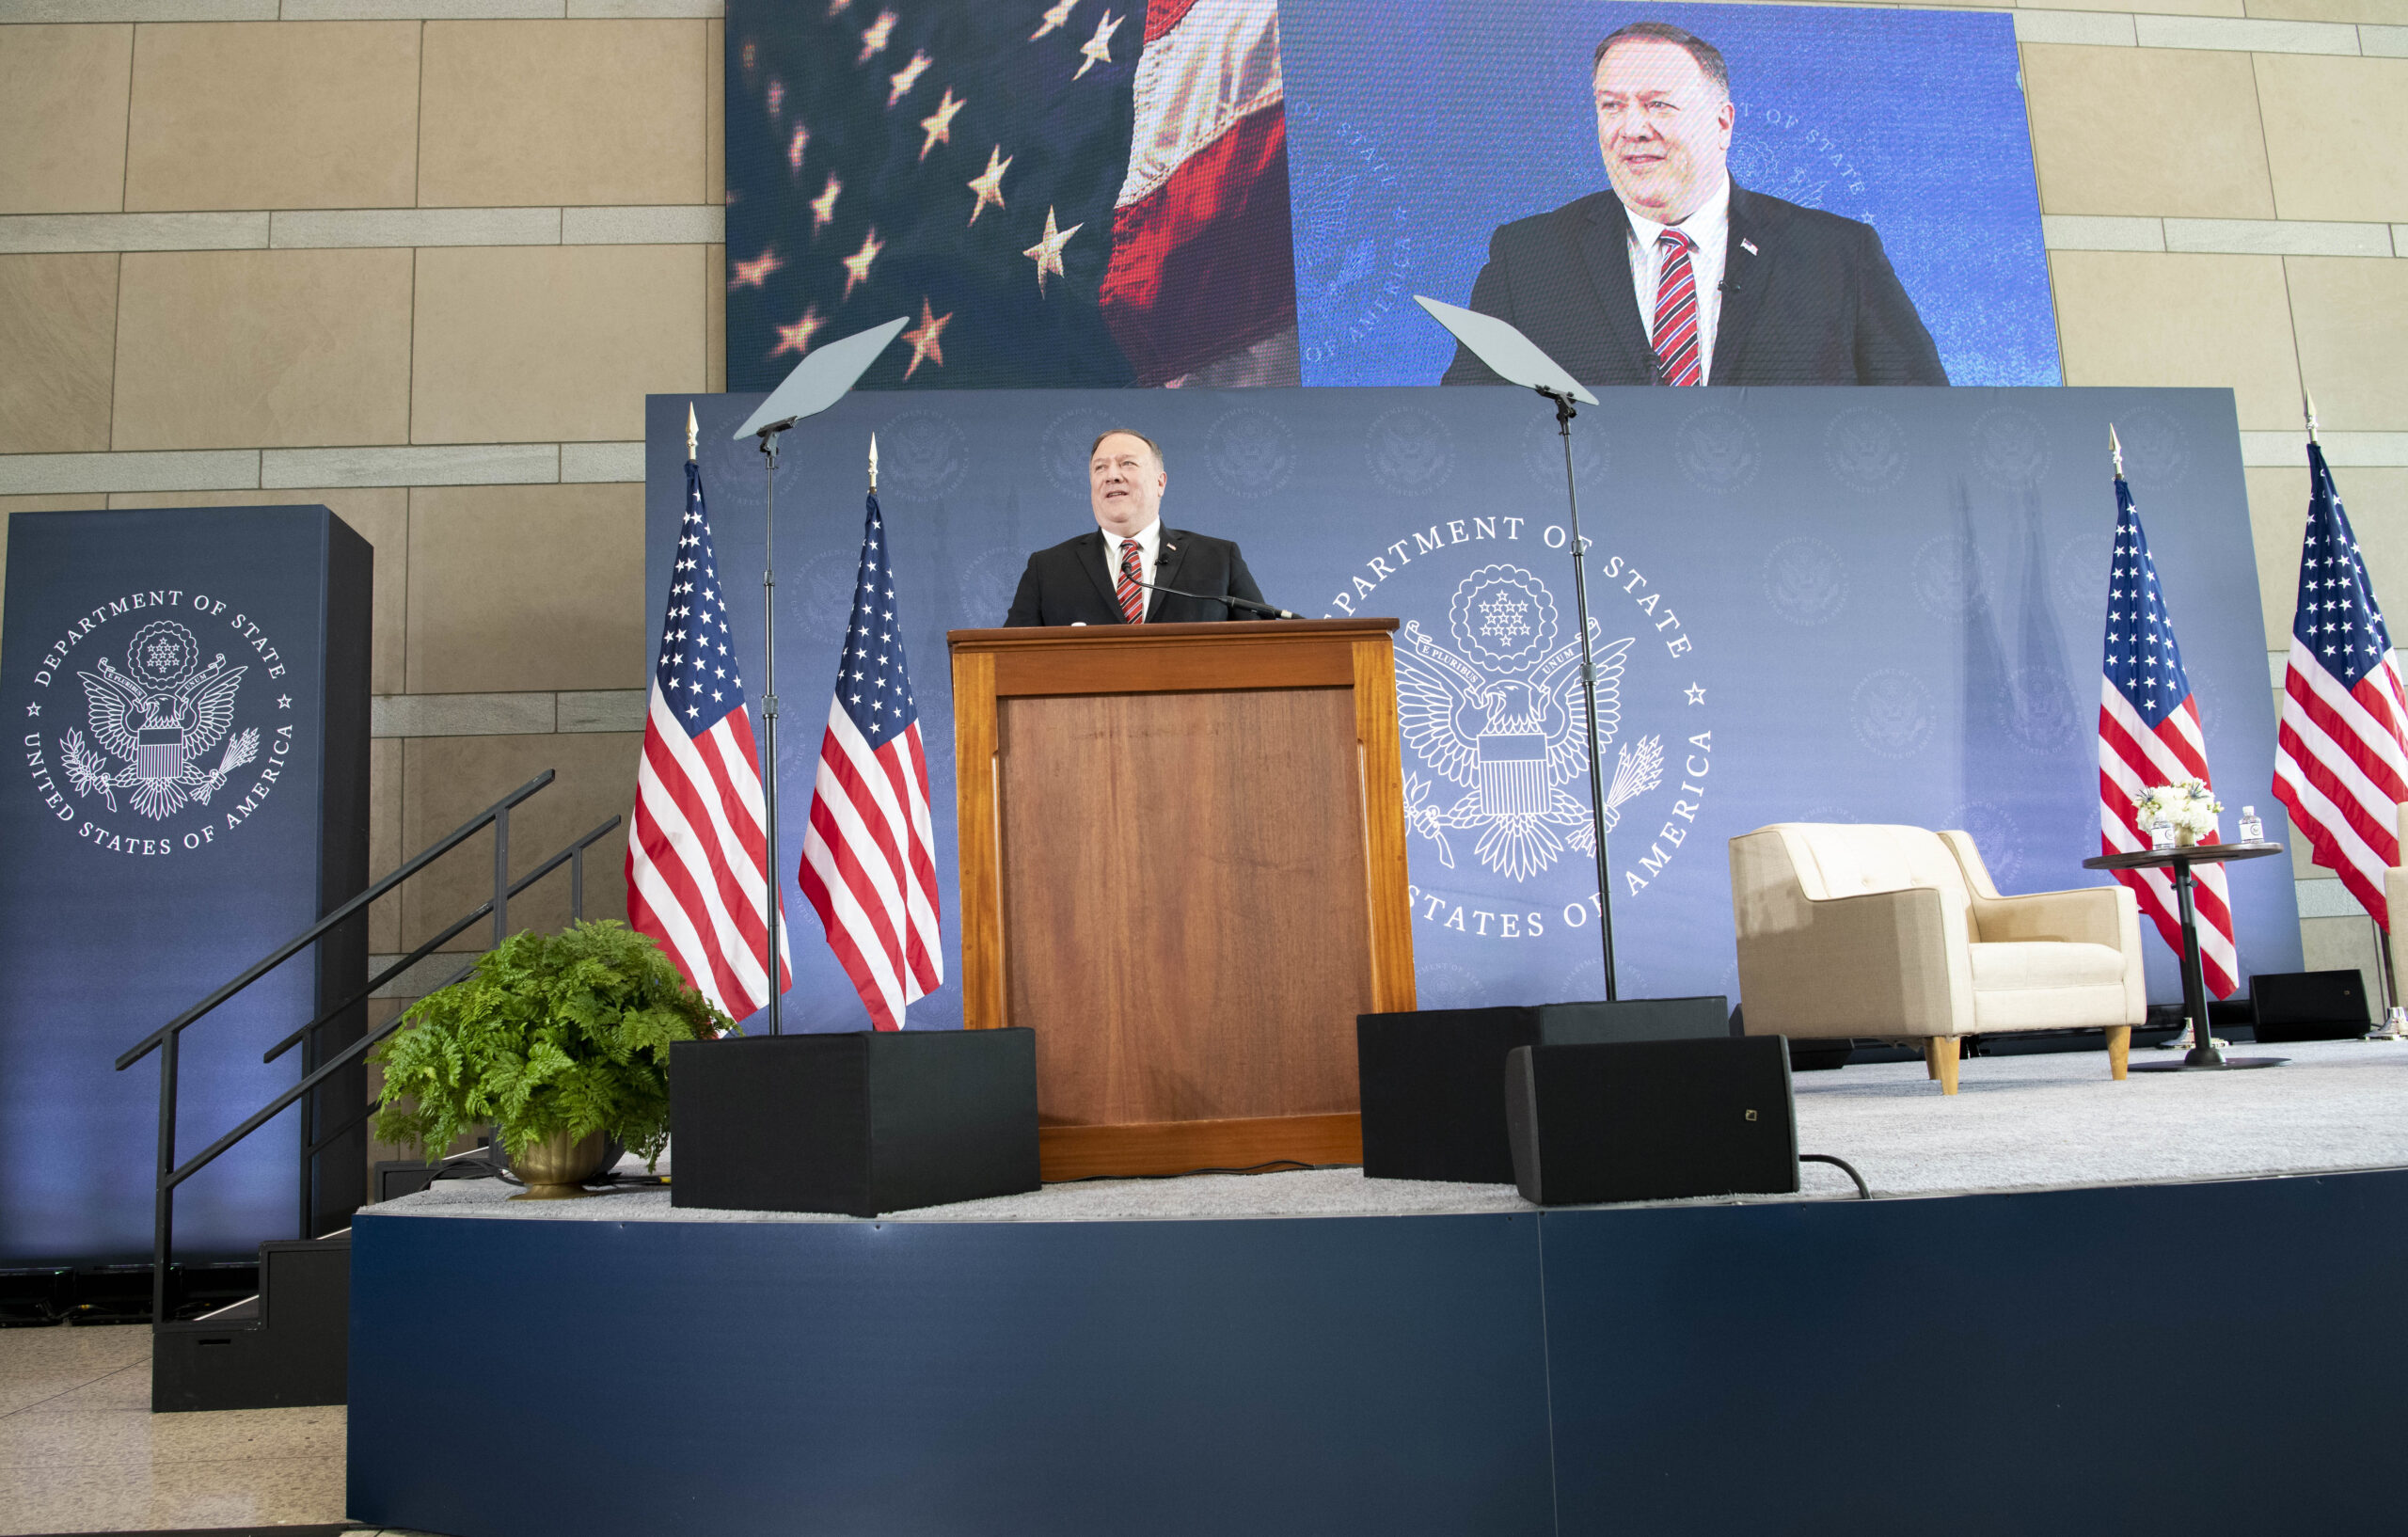 """Secretary of State Michael R. Pompeo delivers remarks on """"Unalienable Rights and the Securing of Freedom"""" at The National Constitution Center, in Philadelphia, Pennsylvania., on July 16, 2020"""